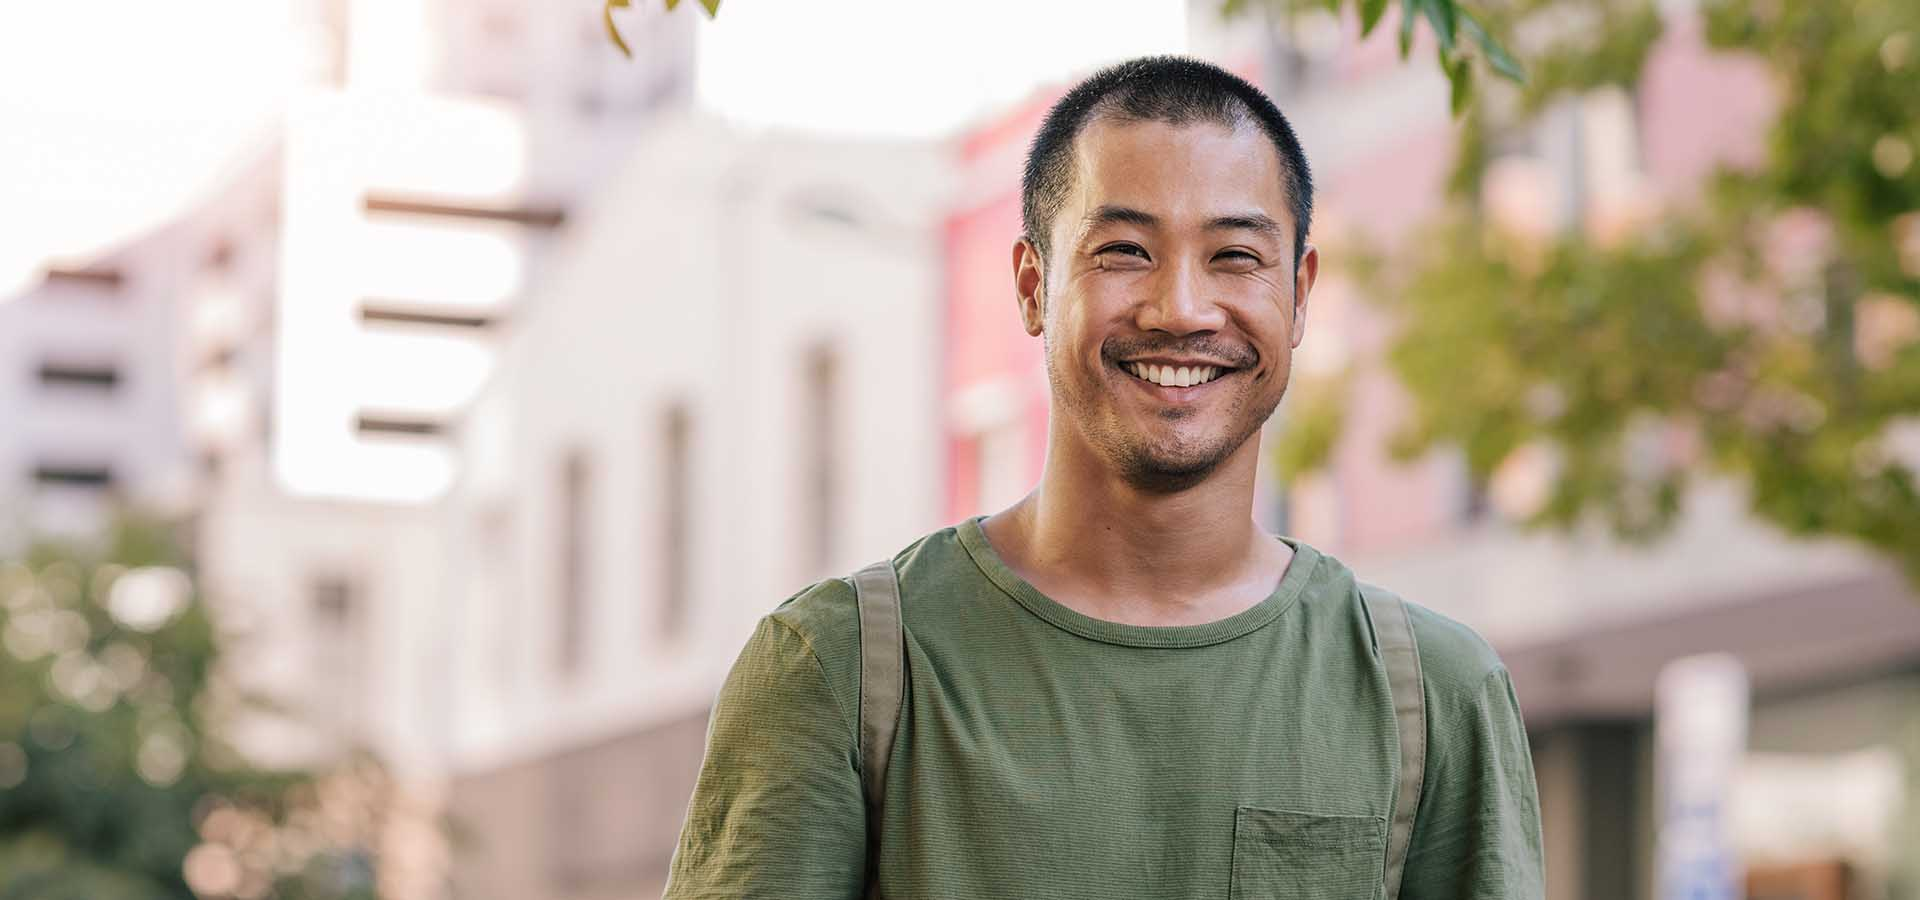 Portrait of a casually dressed young Asian man smiling while standing outside on a city street.